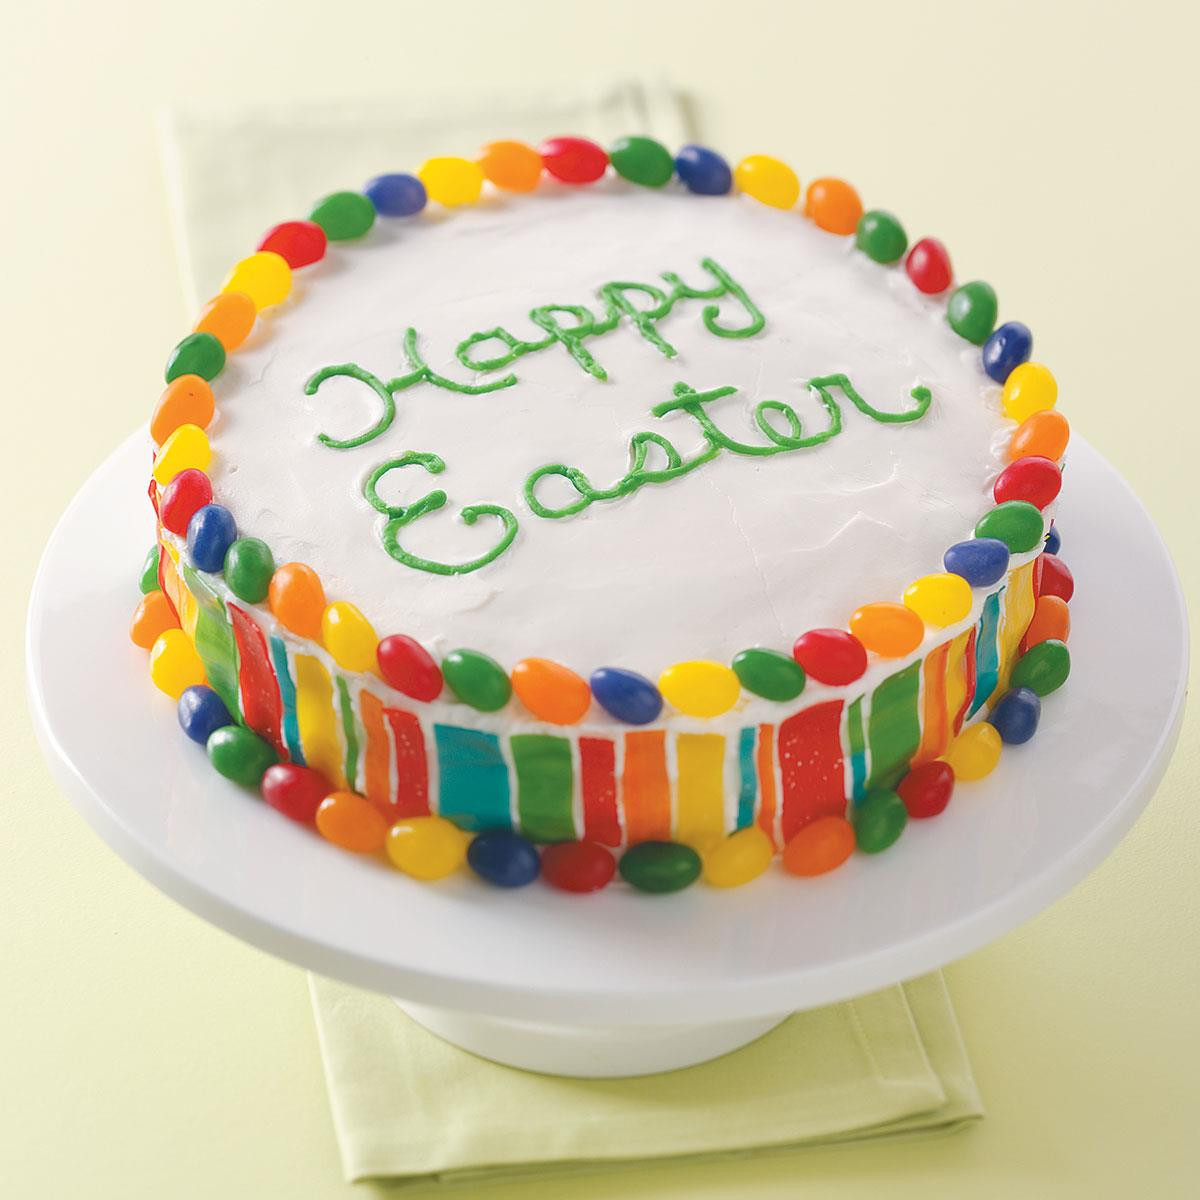 Easter Cake Recipe  Colorful Easter Cake Recipe